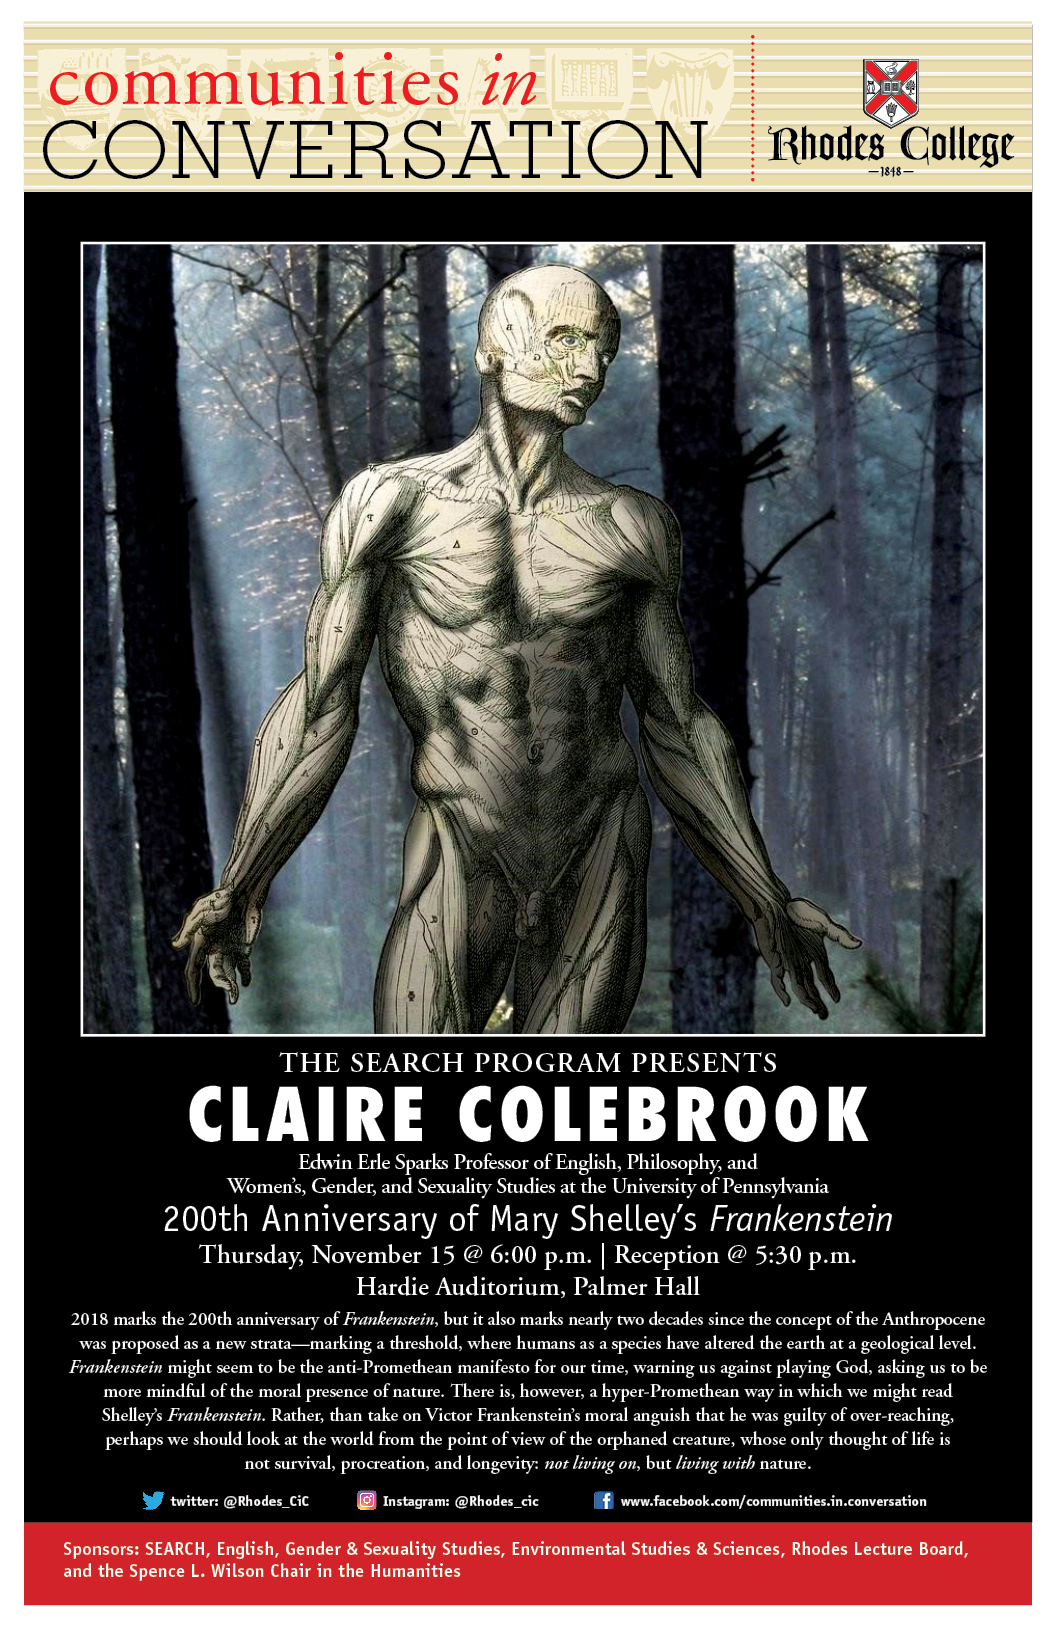 The Search Program presents Claire Colebrook